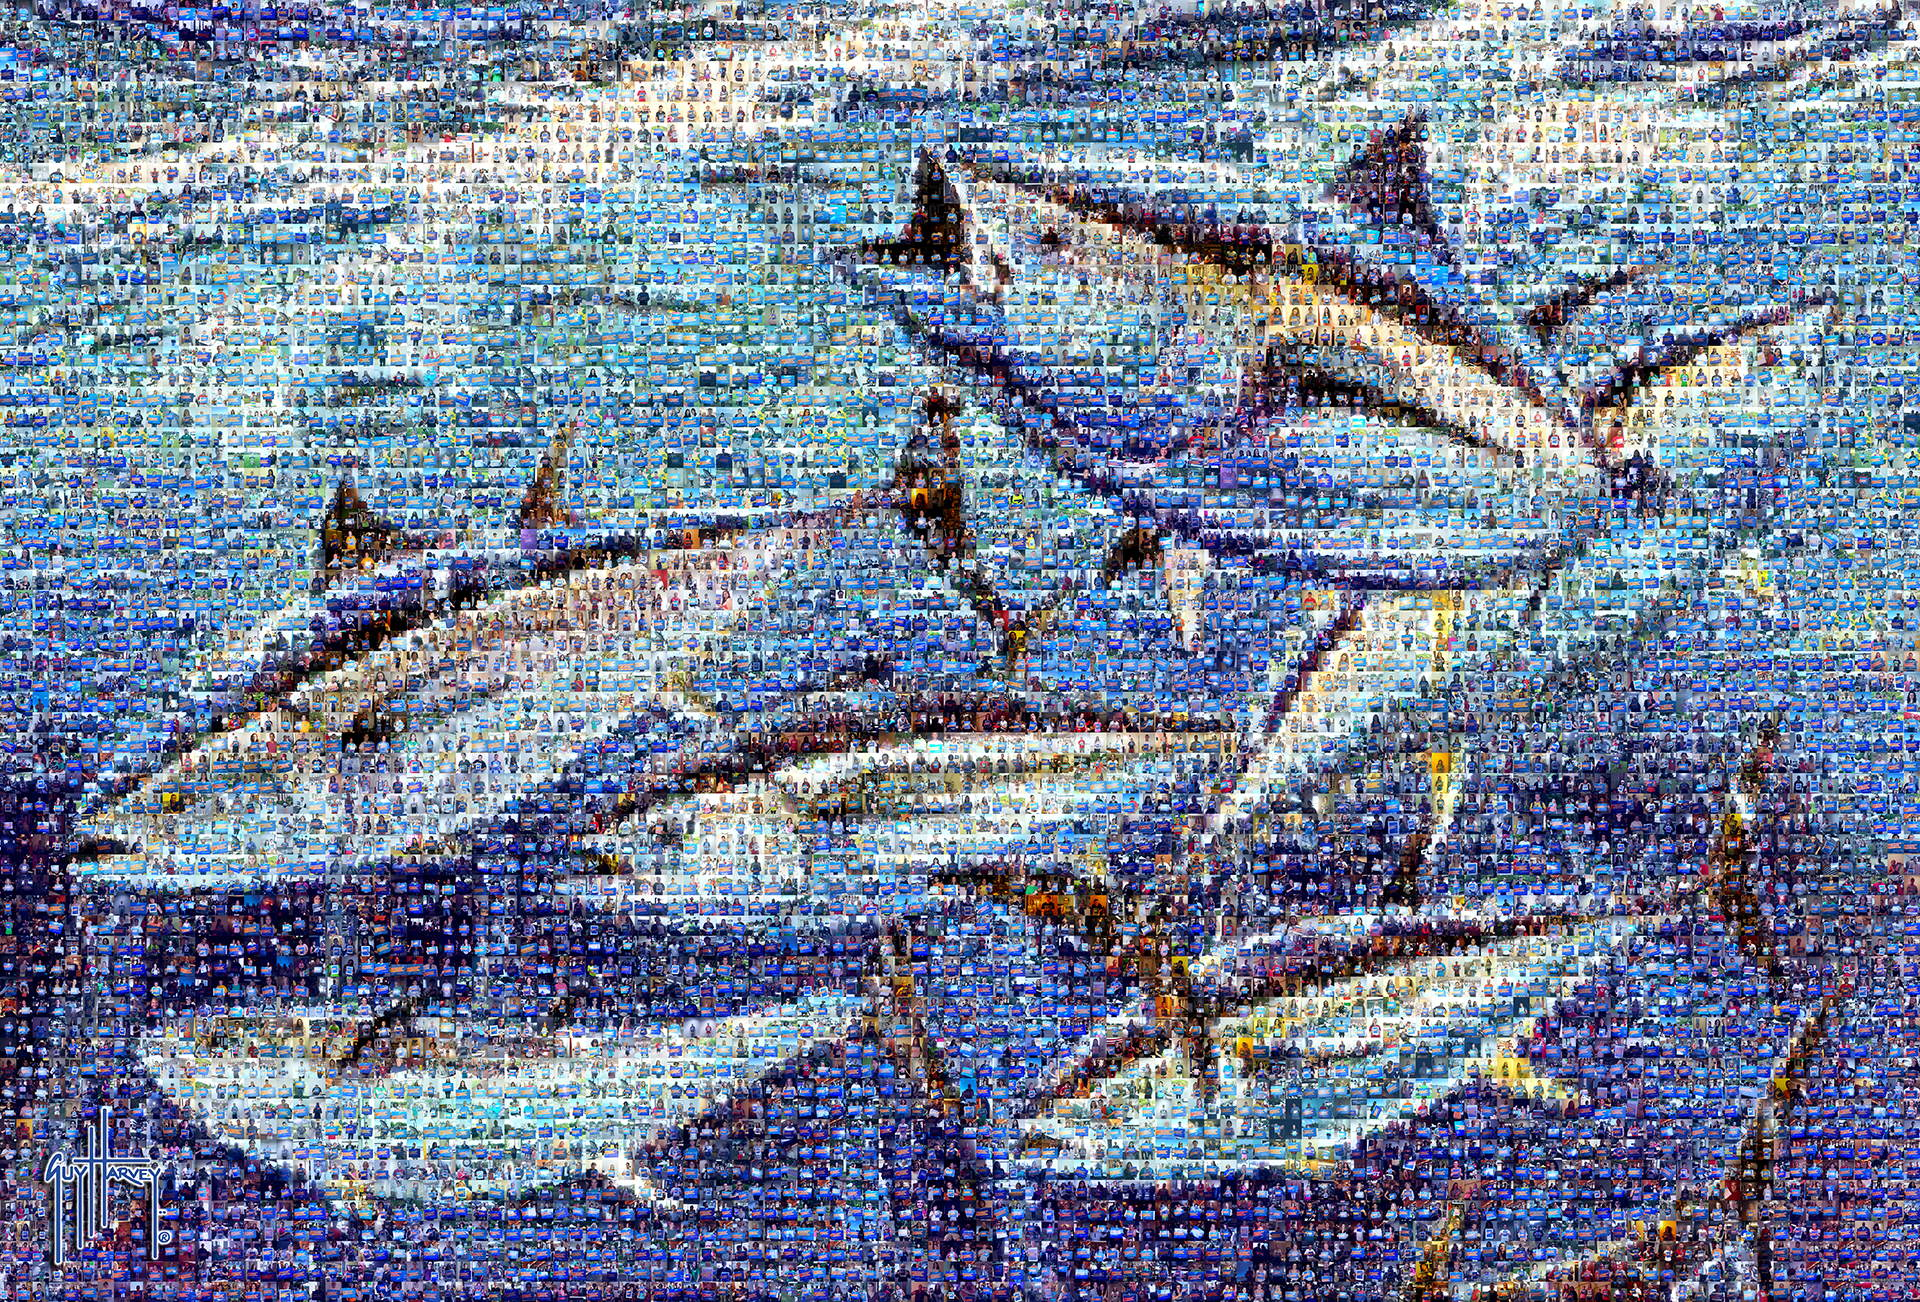 photo mosaic created using over 7,000 images of Bluefin supporters